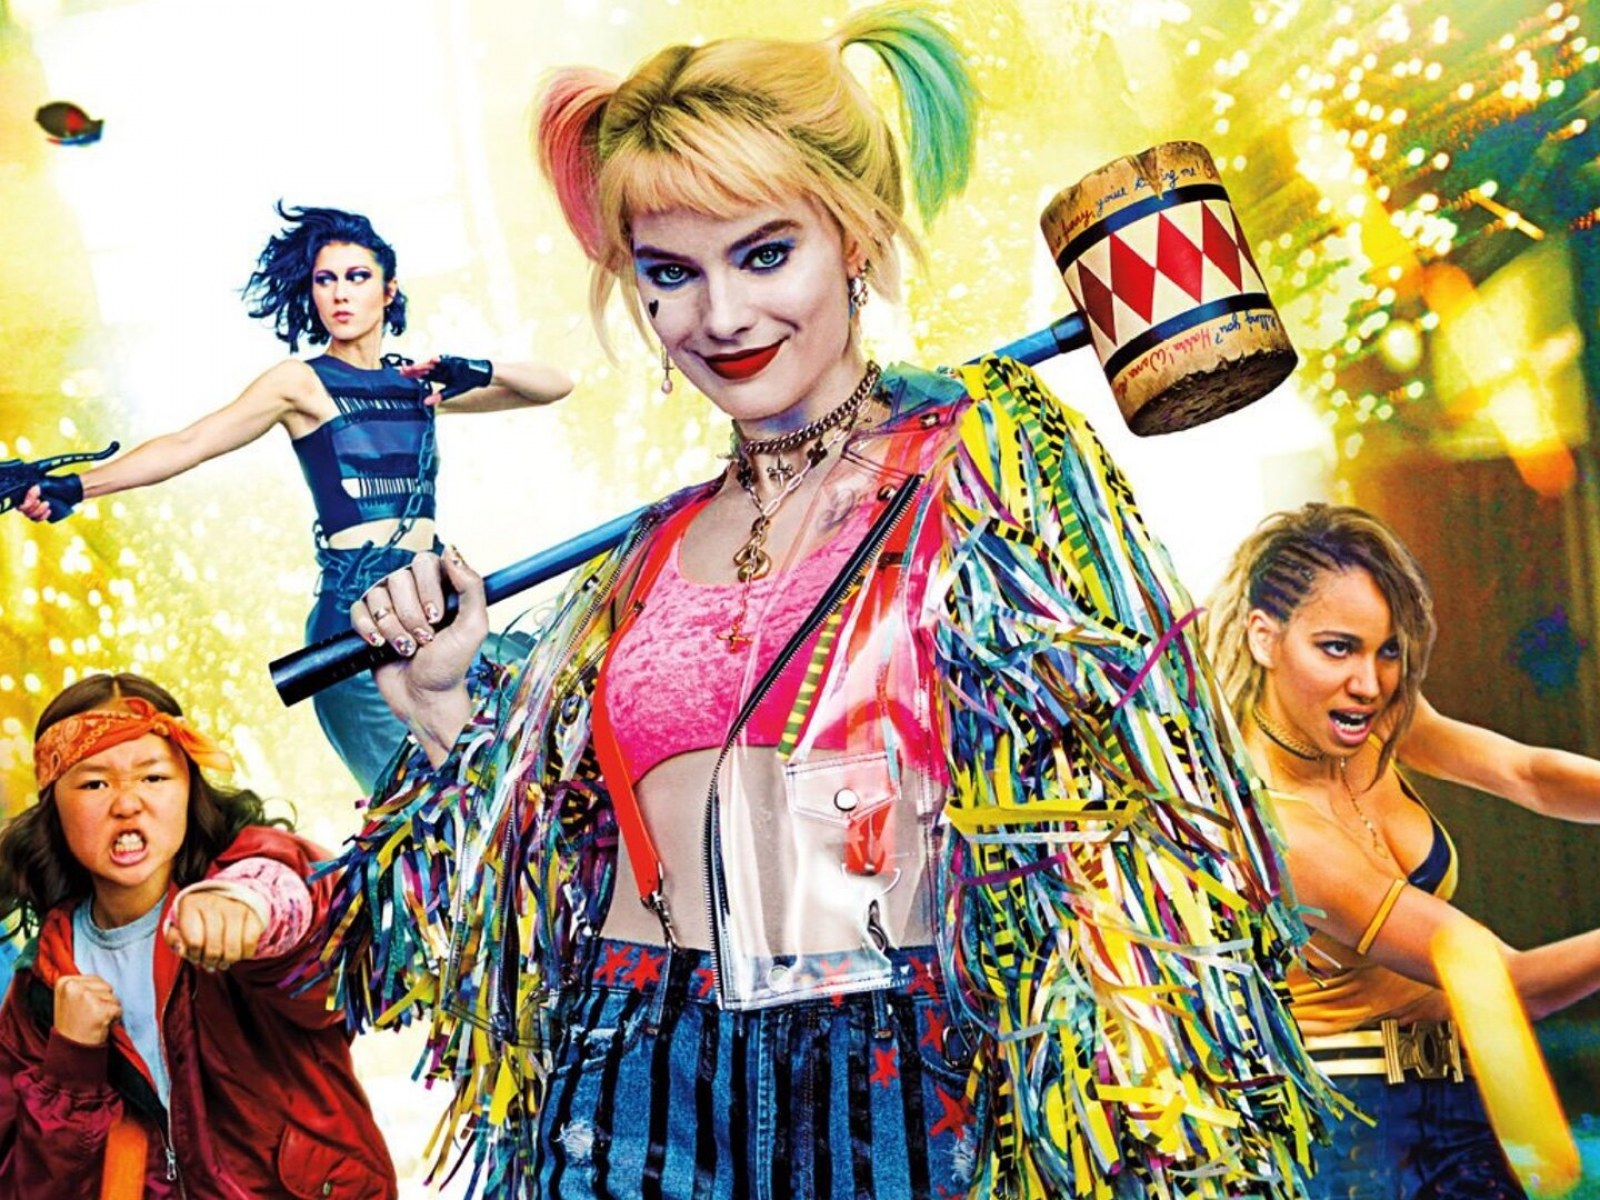 Birds Of Prey Post Credits Scene Is There A Scene After The Credits